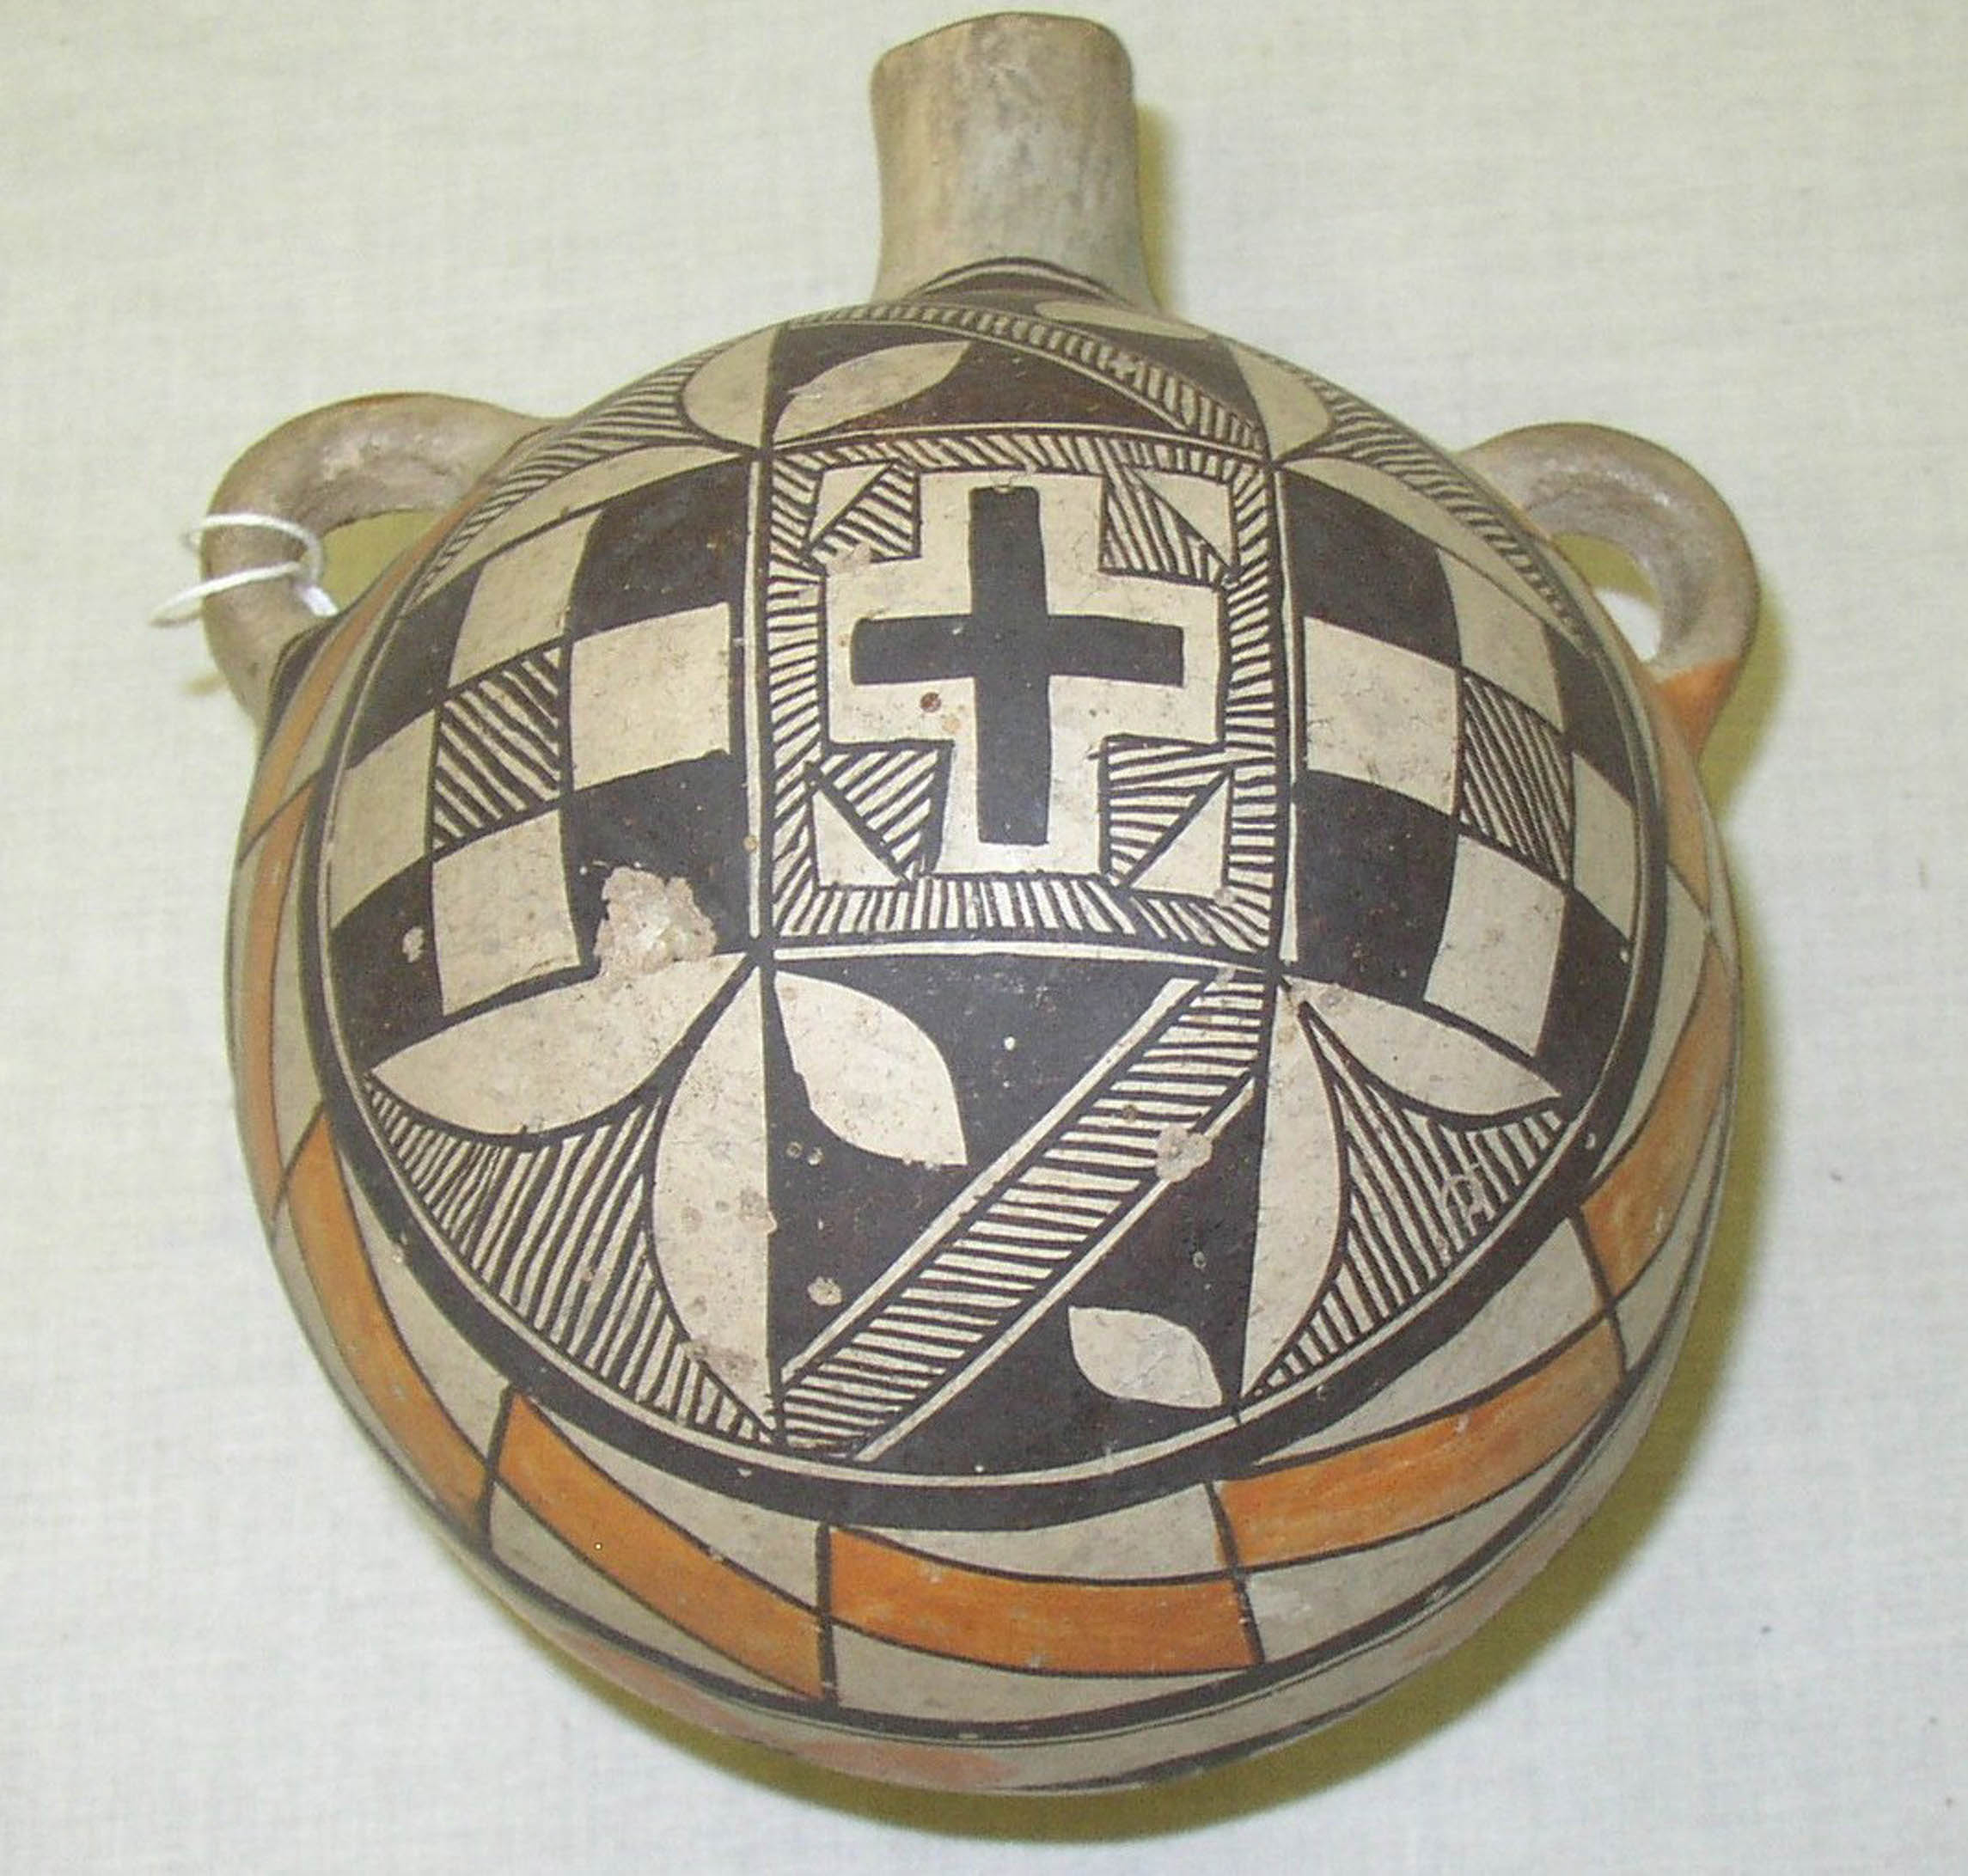 A pottery canteen that includes a black, white, and orange design on it. At the center is a cross.